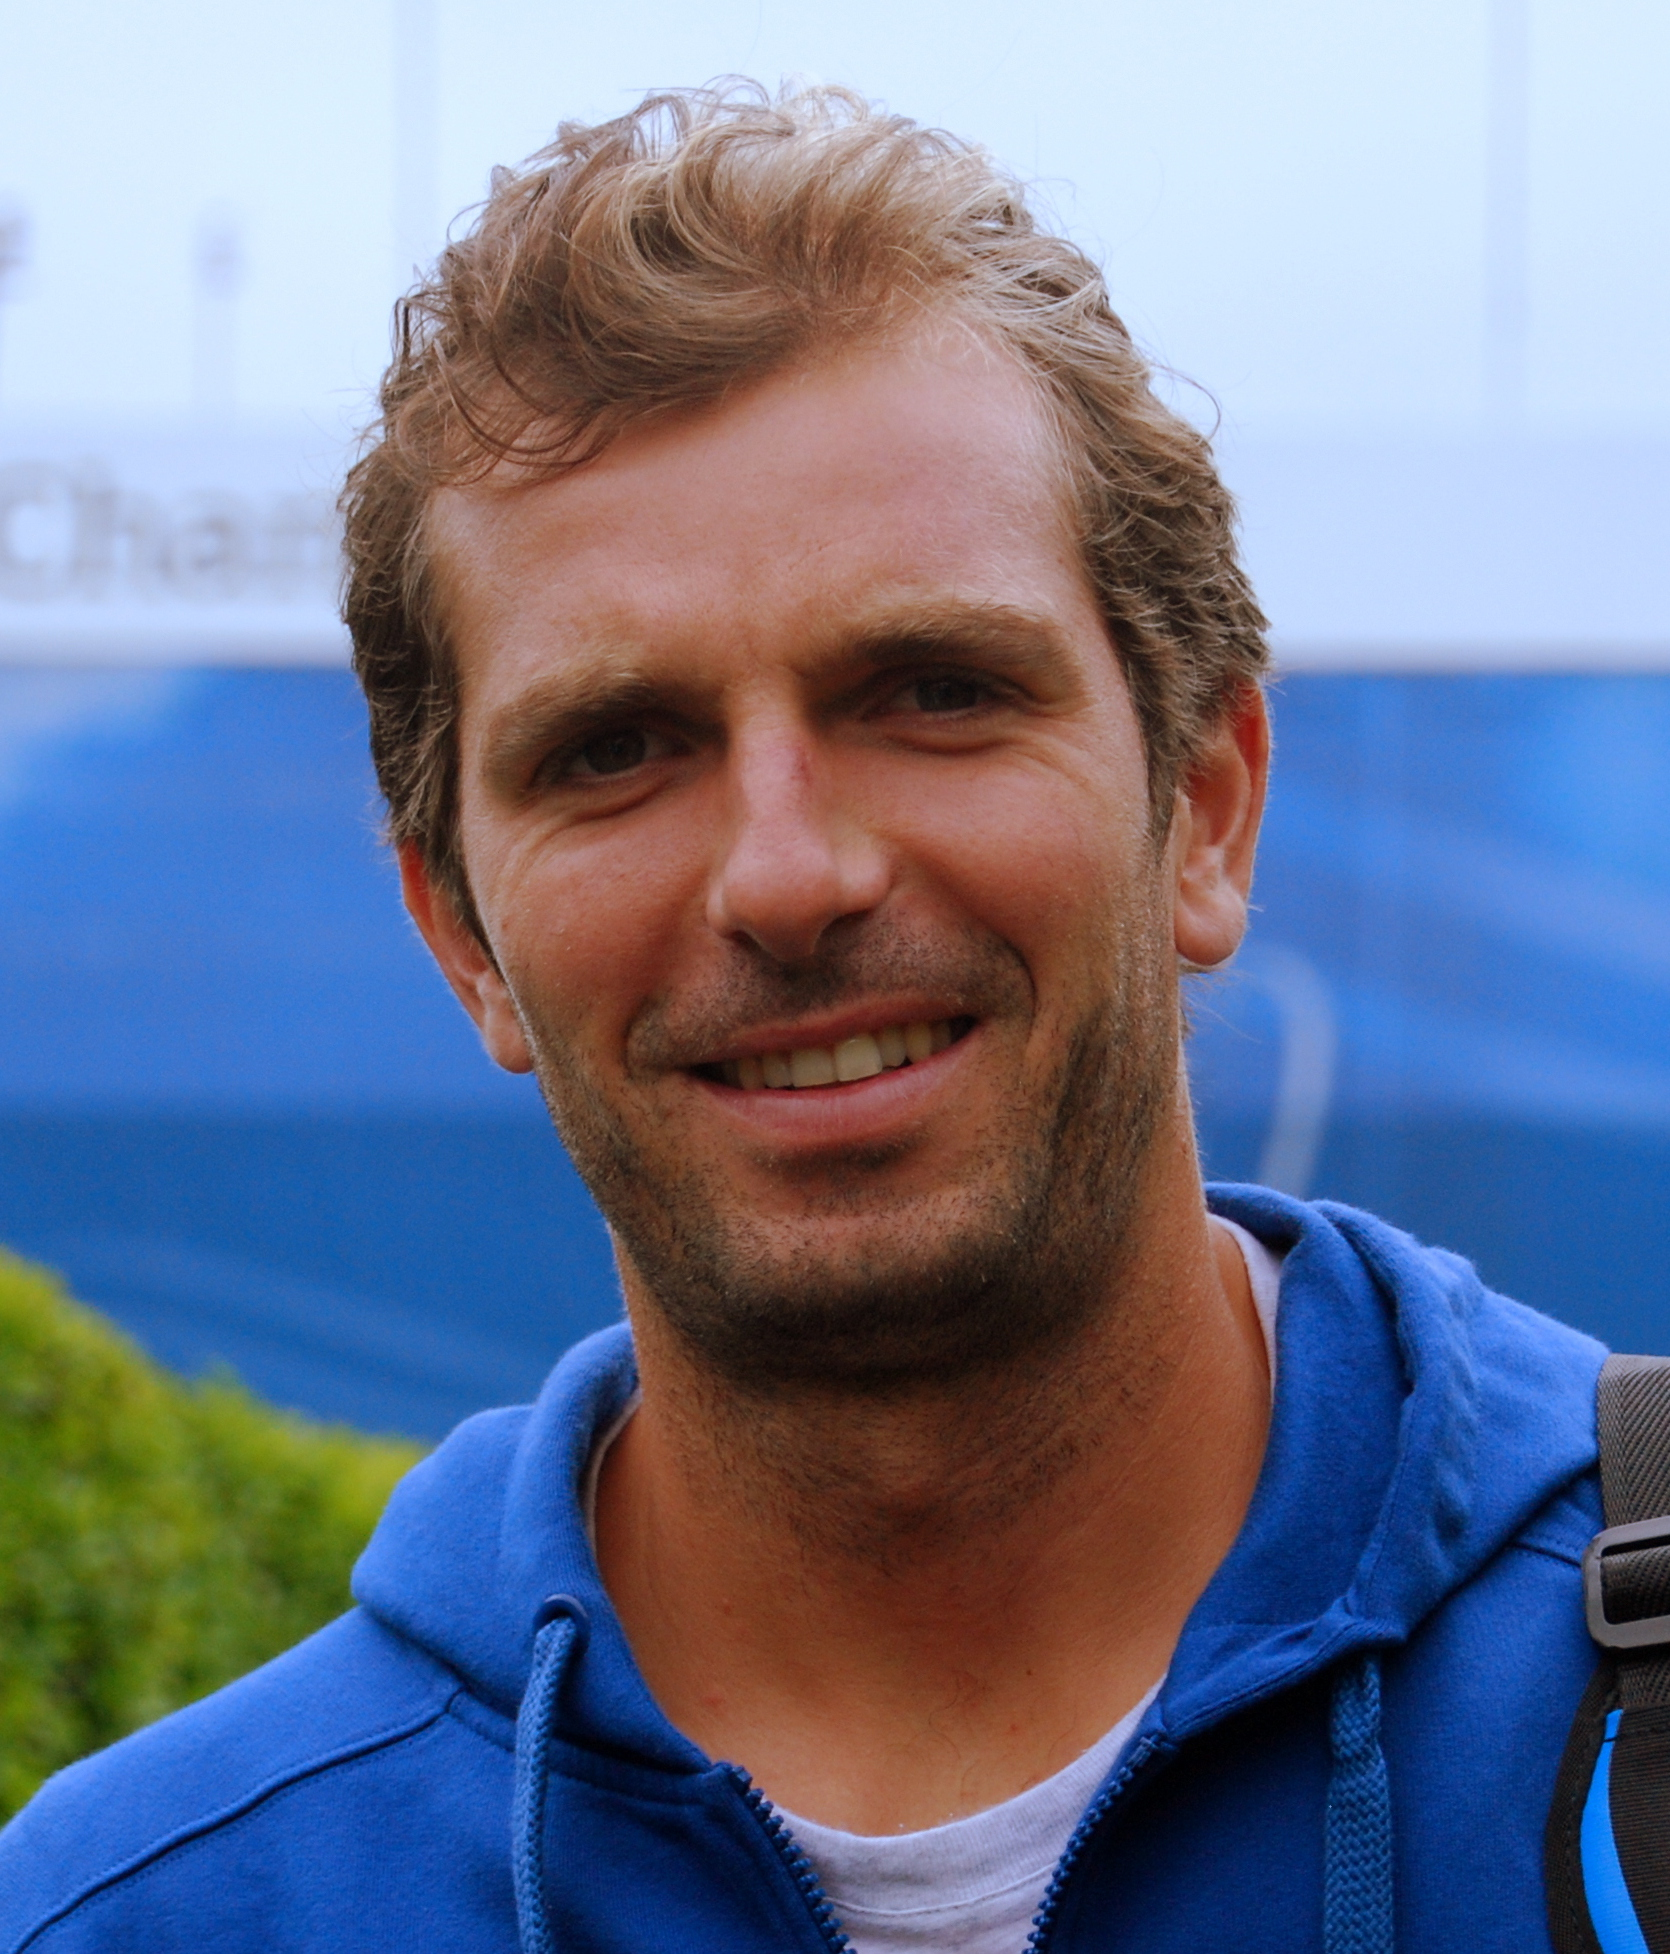 The 36-year old son of father (?) and mother(?) Julien Benneteau in 2018 photo. Julien Benneteau earned a  million dollar salary - leaving the net worth at 7.5 million in 2018